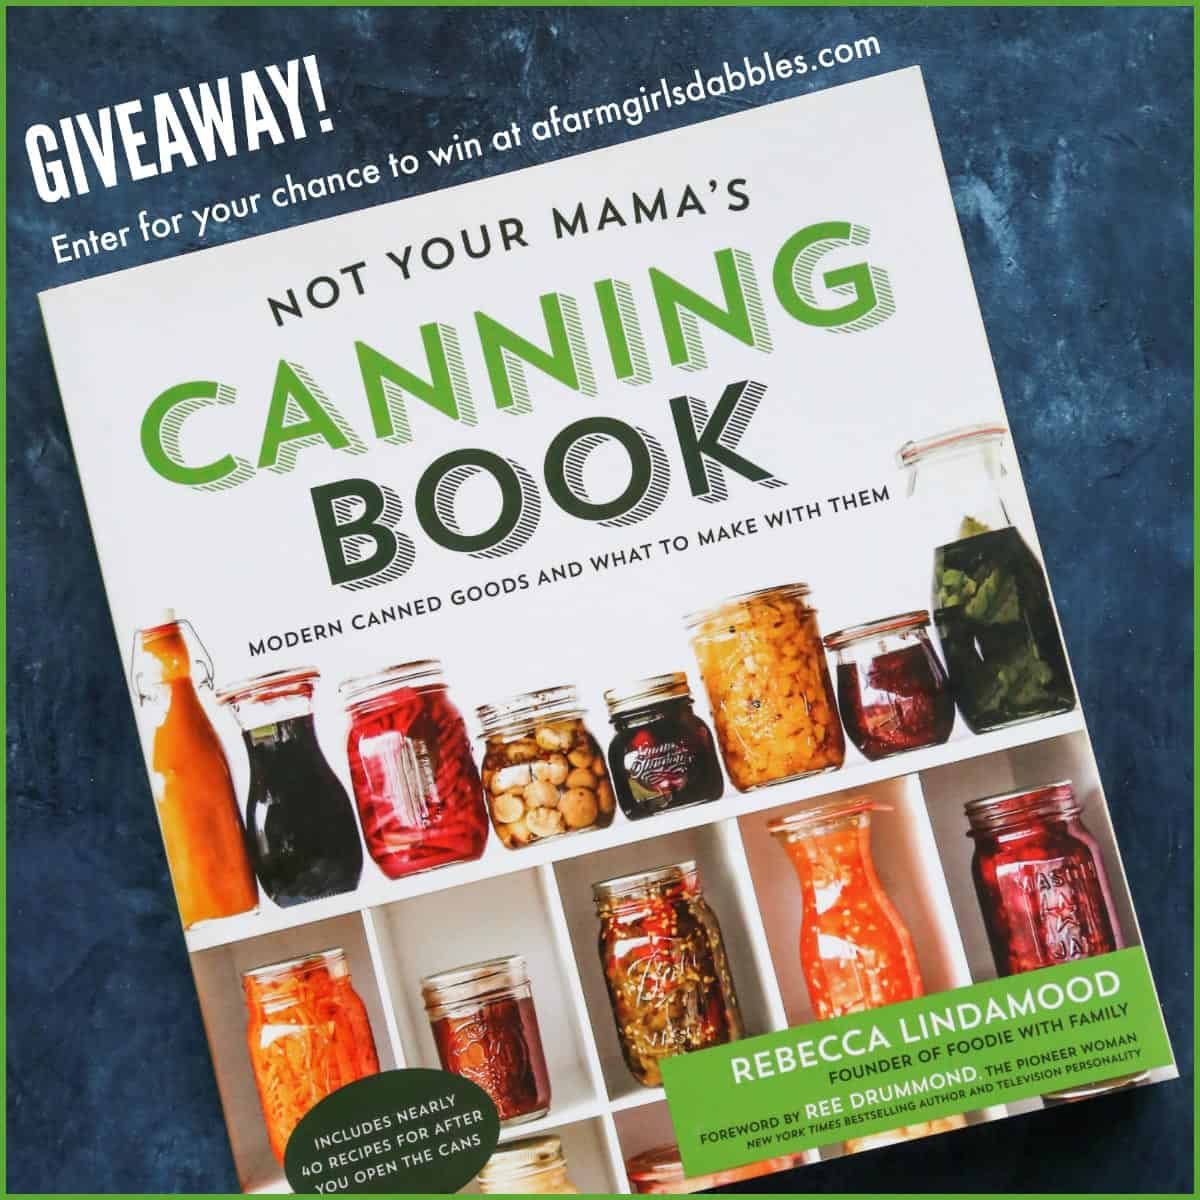 Not Your Mama's Canning Book Giveaway from afarmgirlsdabbles.com